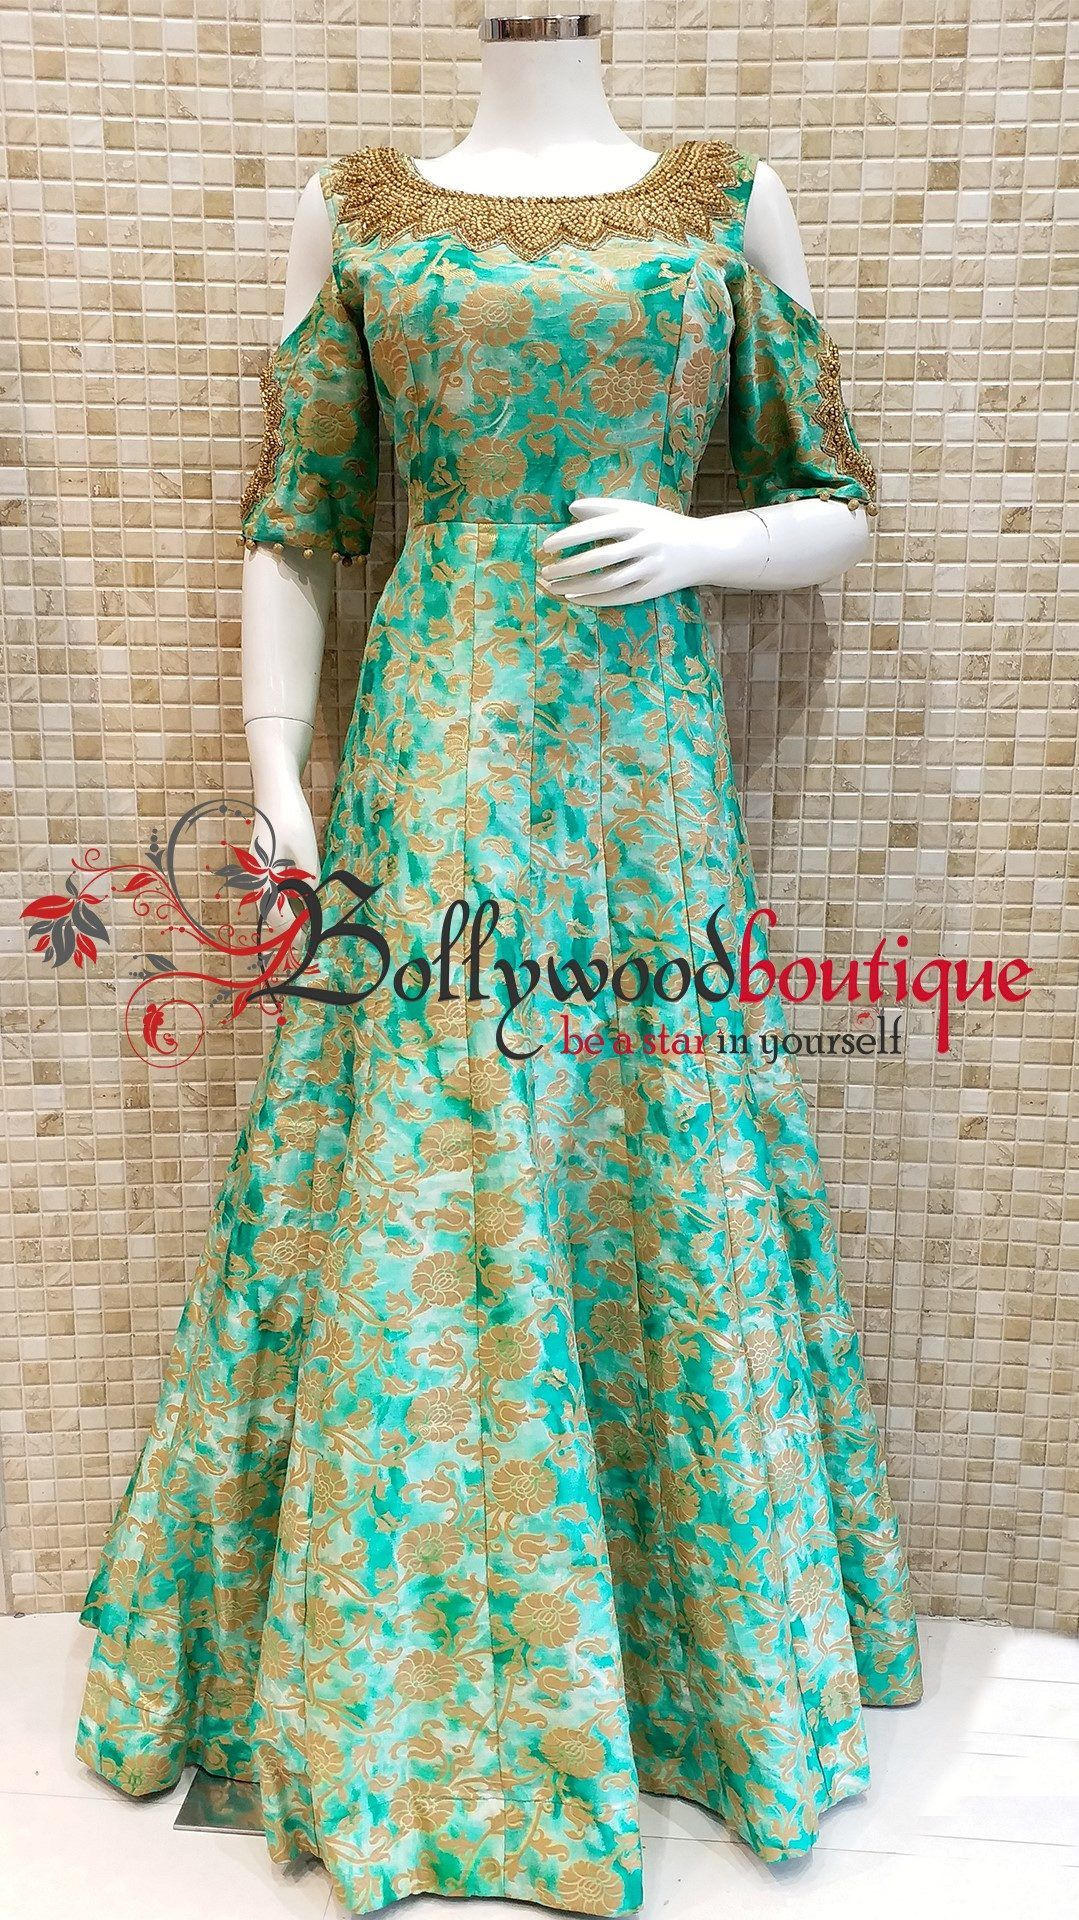 Party Wear Dresses - Bollywood Boutique | long frocks | Pinterest ...